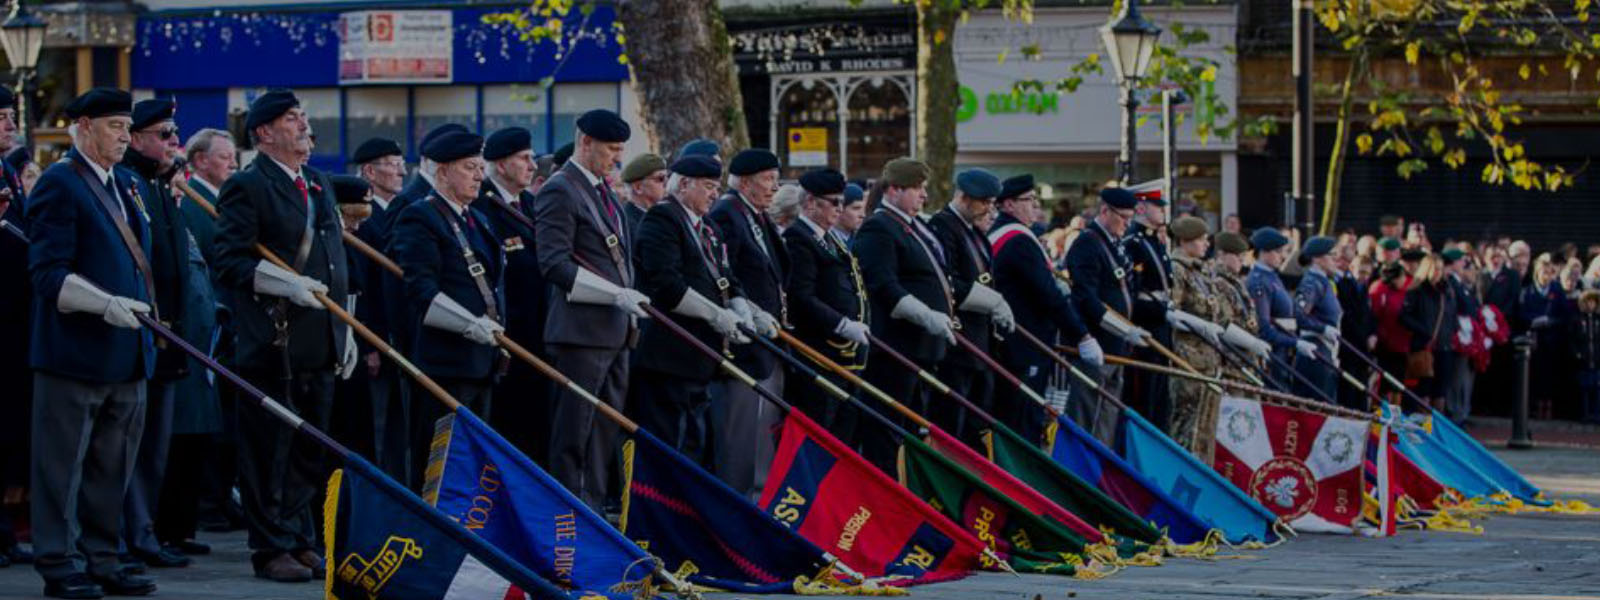 Image of Remembrance Sunday – Armed Forces